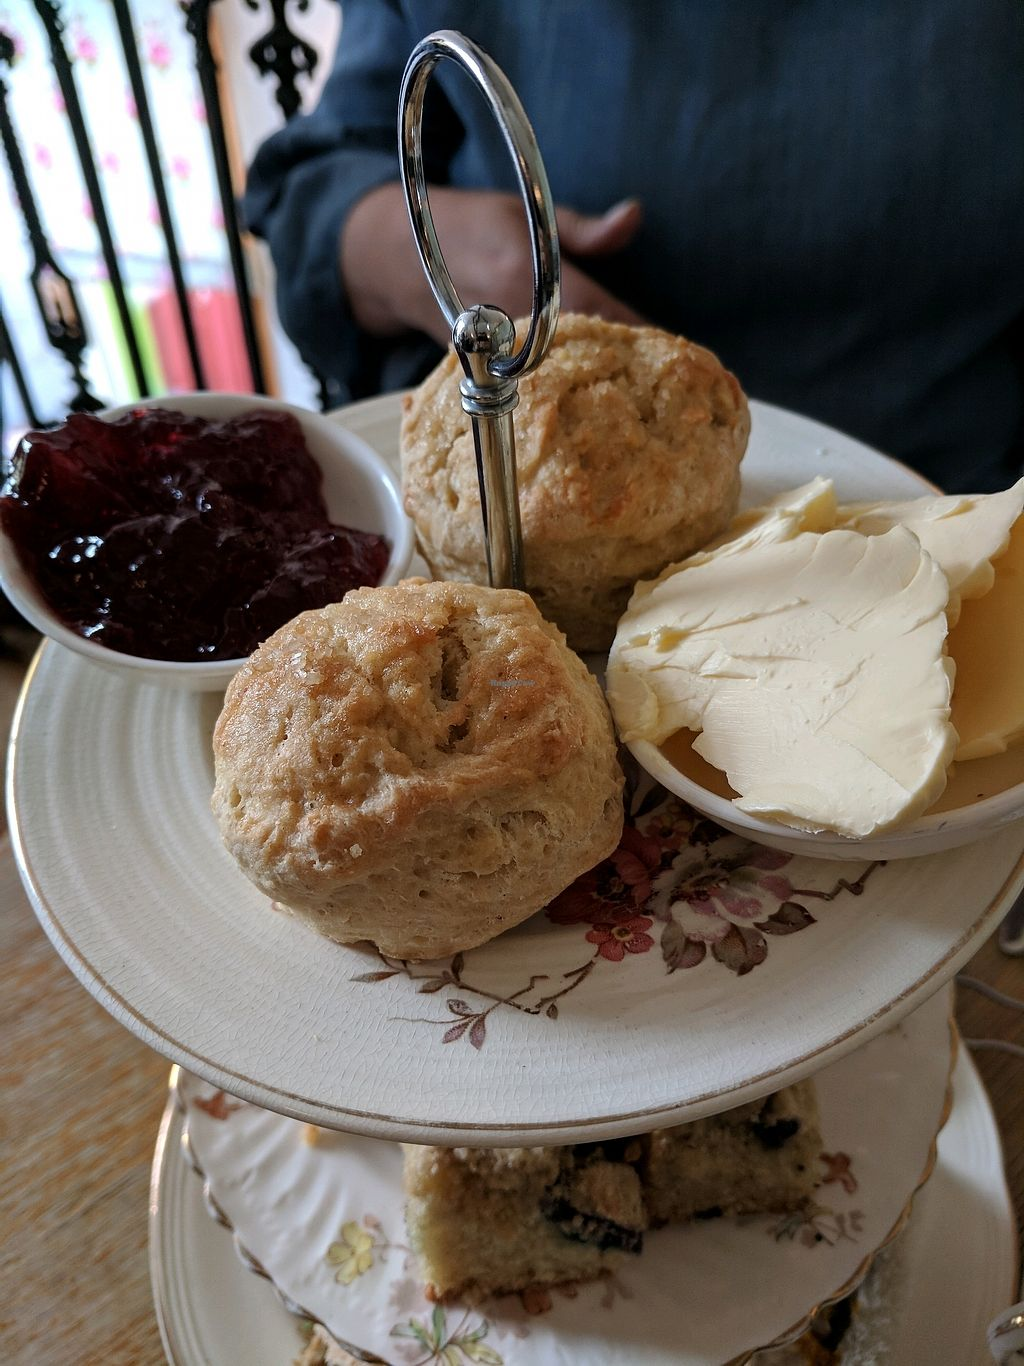 "Photo of Hidden Lane Tea Room  by <a href=""/members/profile/Jalzuri"">Jalzuri</a> <br/>scones with butter and jam <br/> March 12, 2018  - <a href='/contact/abuse/image/78990/369844'>Report</a>"